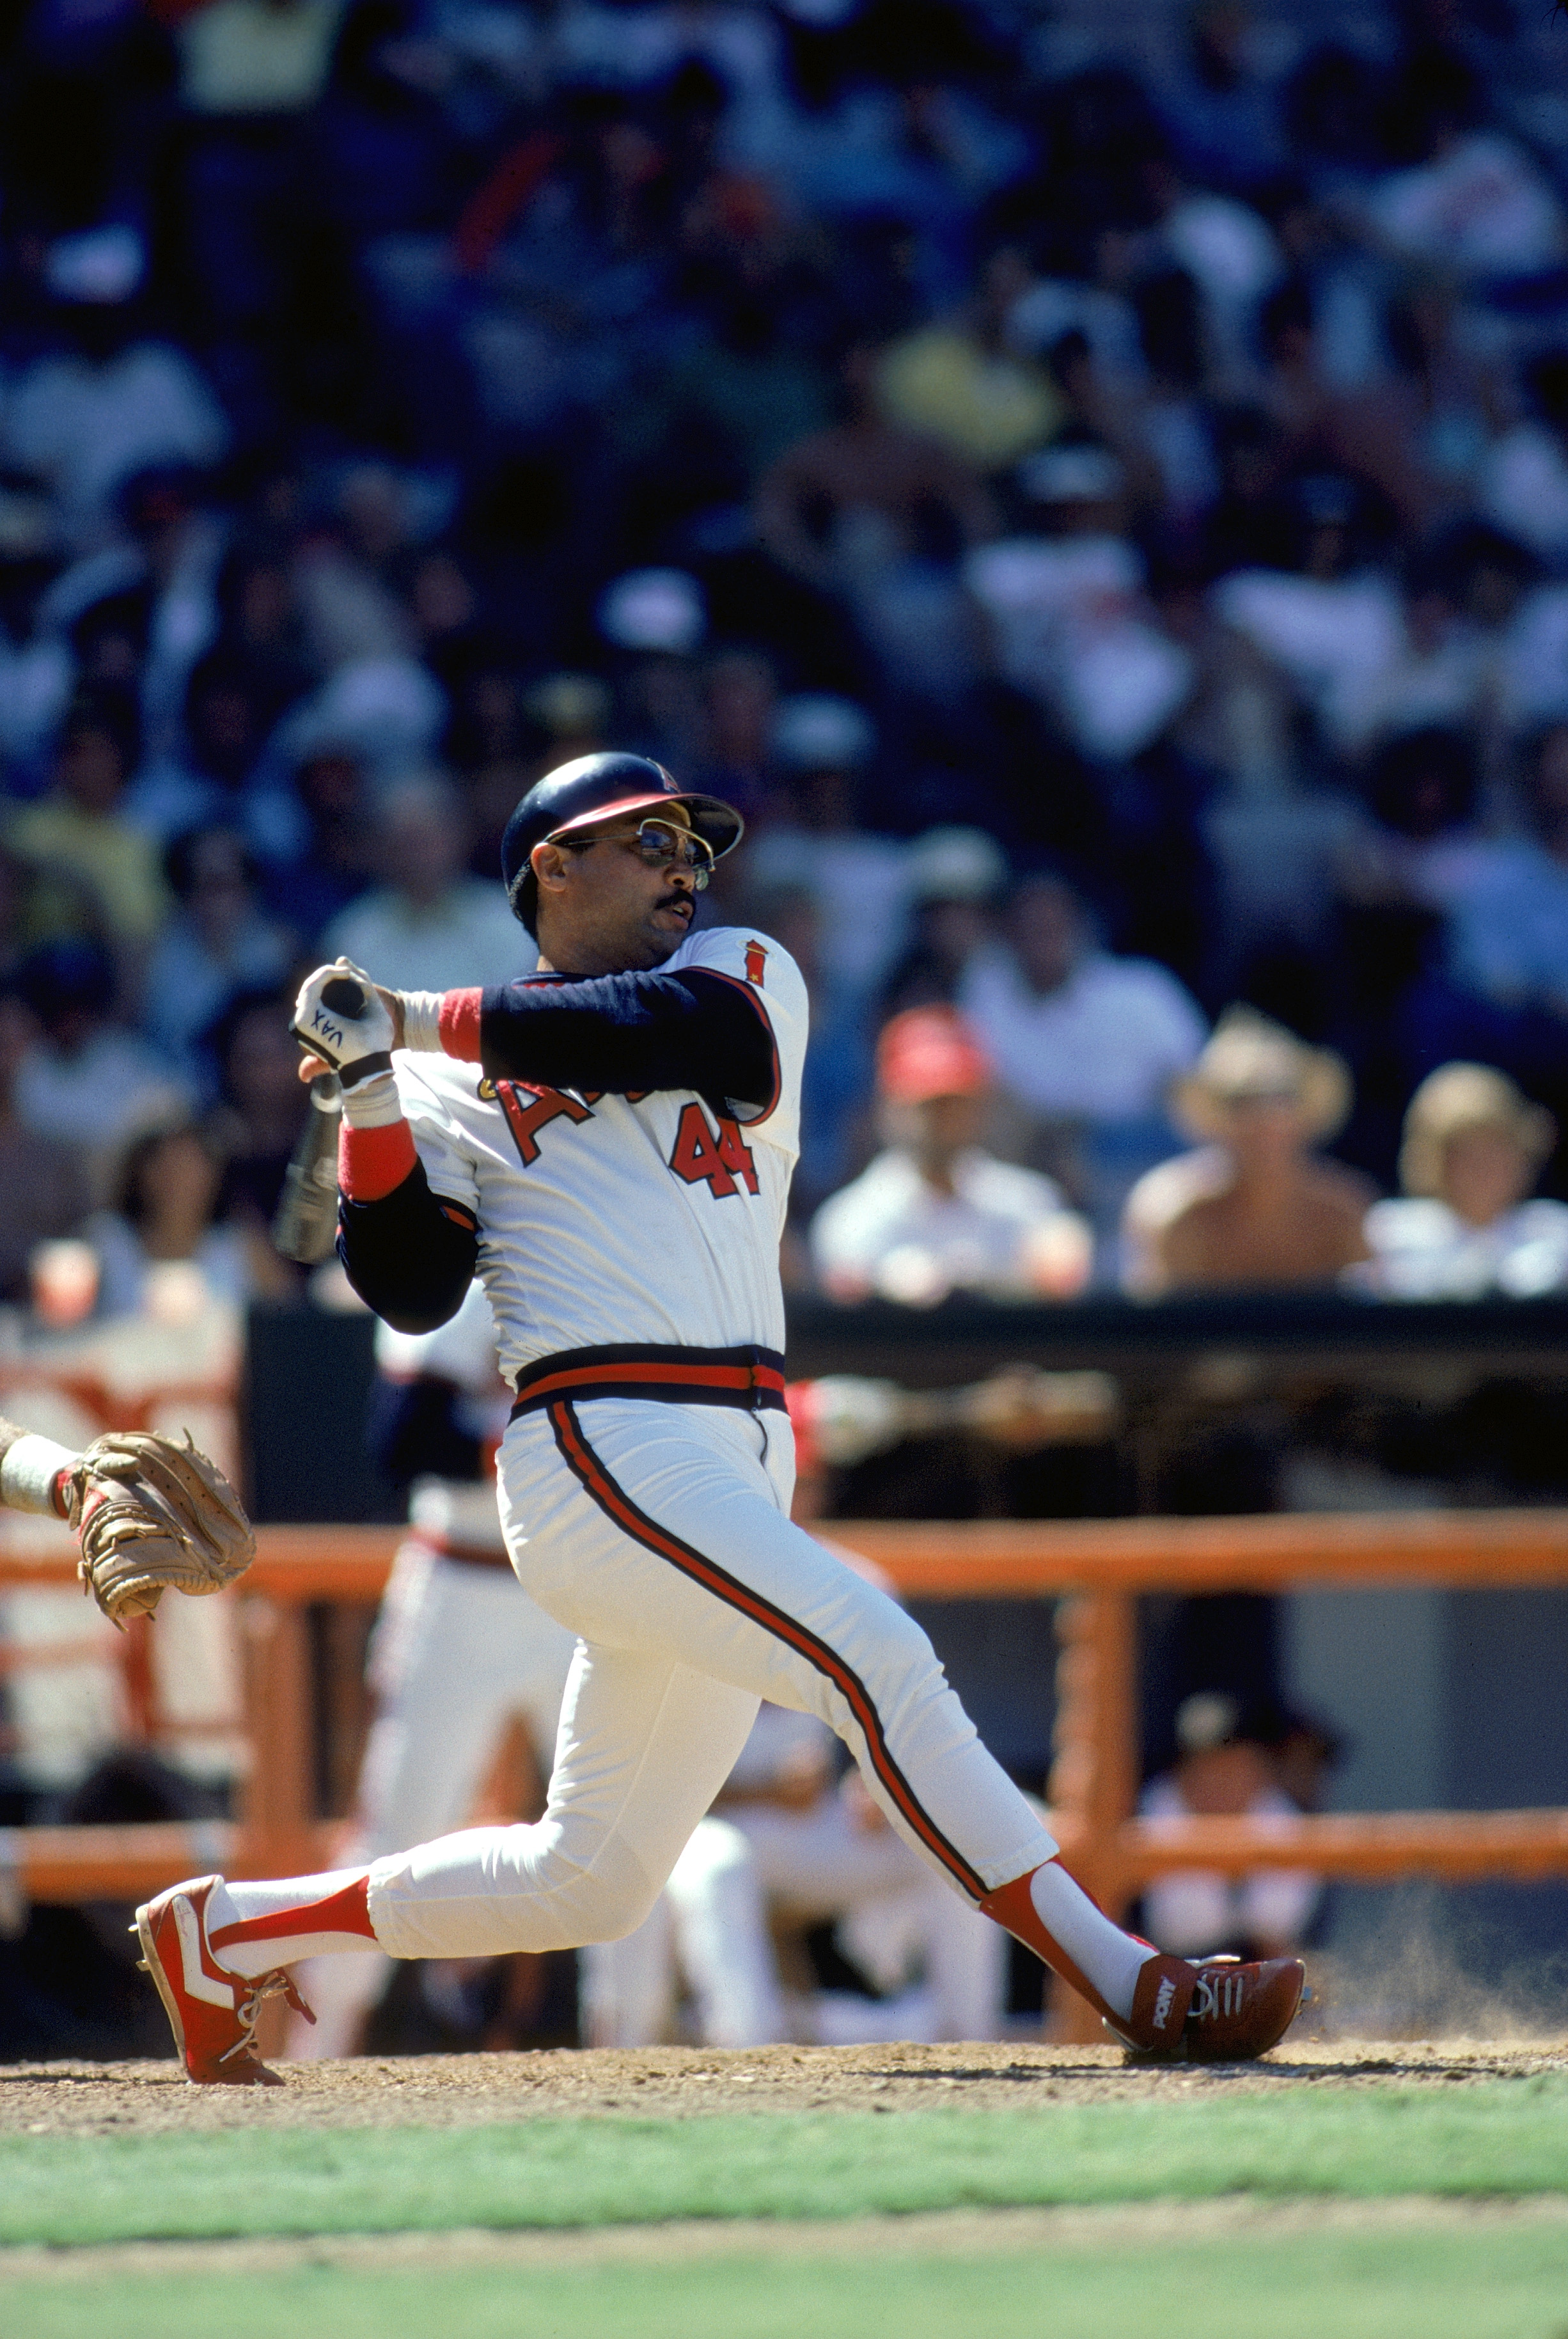 ANAHEIM, CA - 1984:  Reggie Jackson #44 of the California Angels watches the flight of his hit during a 1984 MLB game at Angel Stadium in Anaheim, California. (Photo by Rick Stewart/Getty Images)